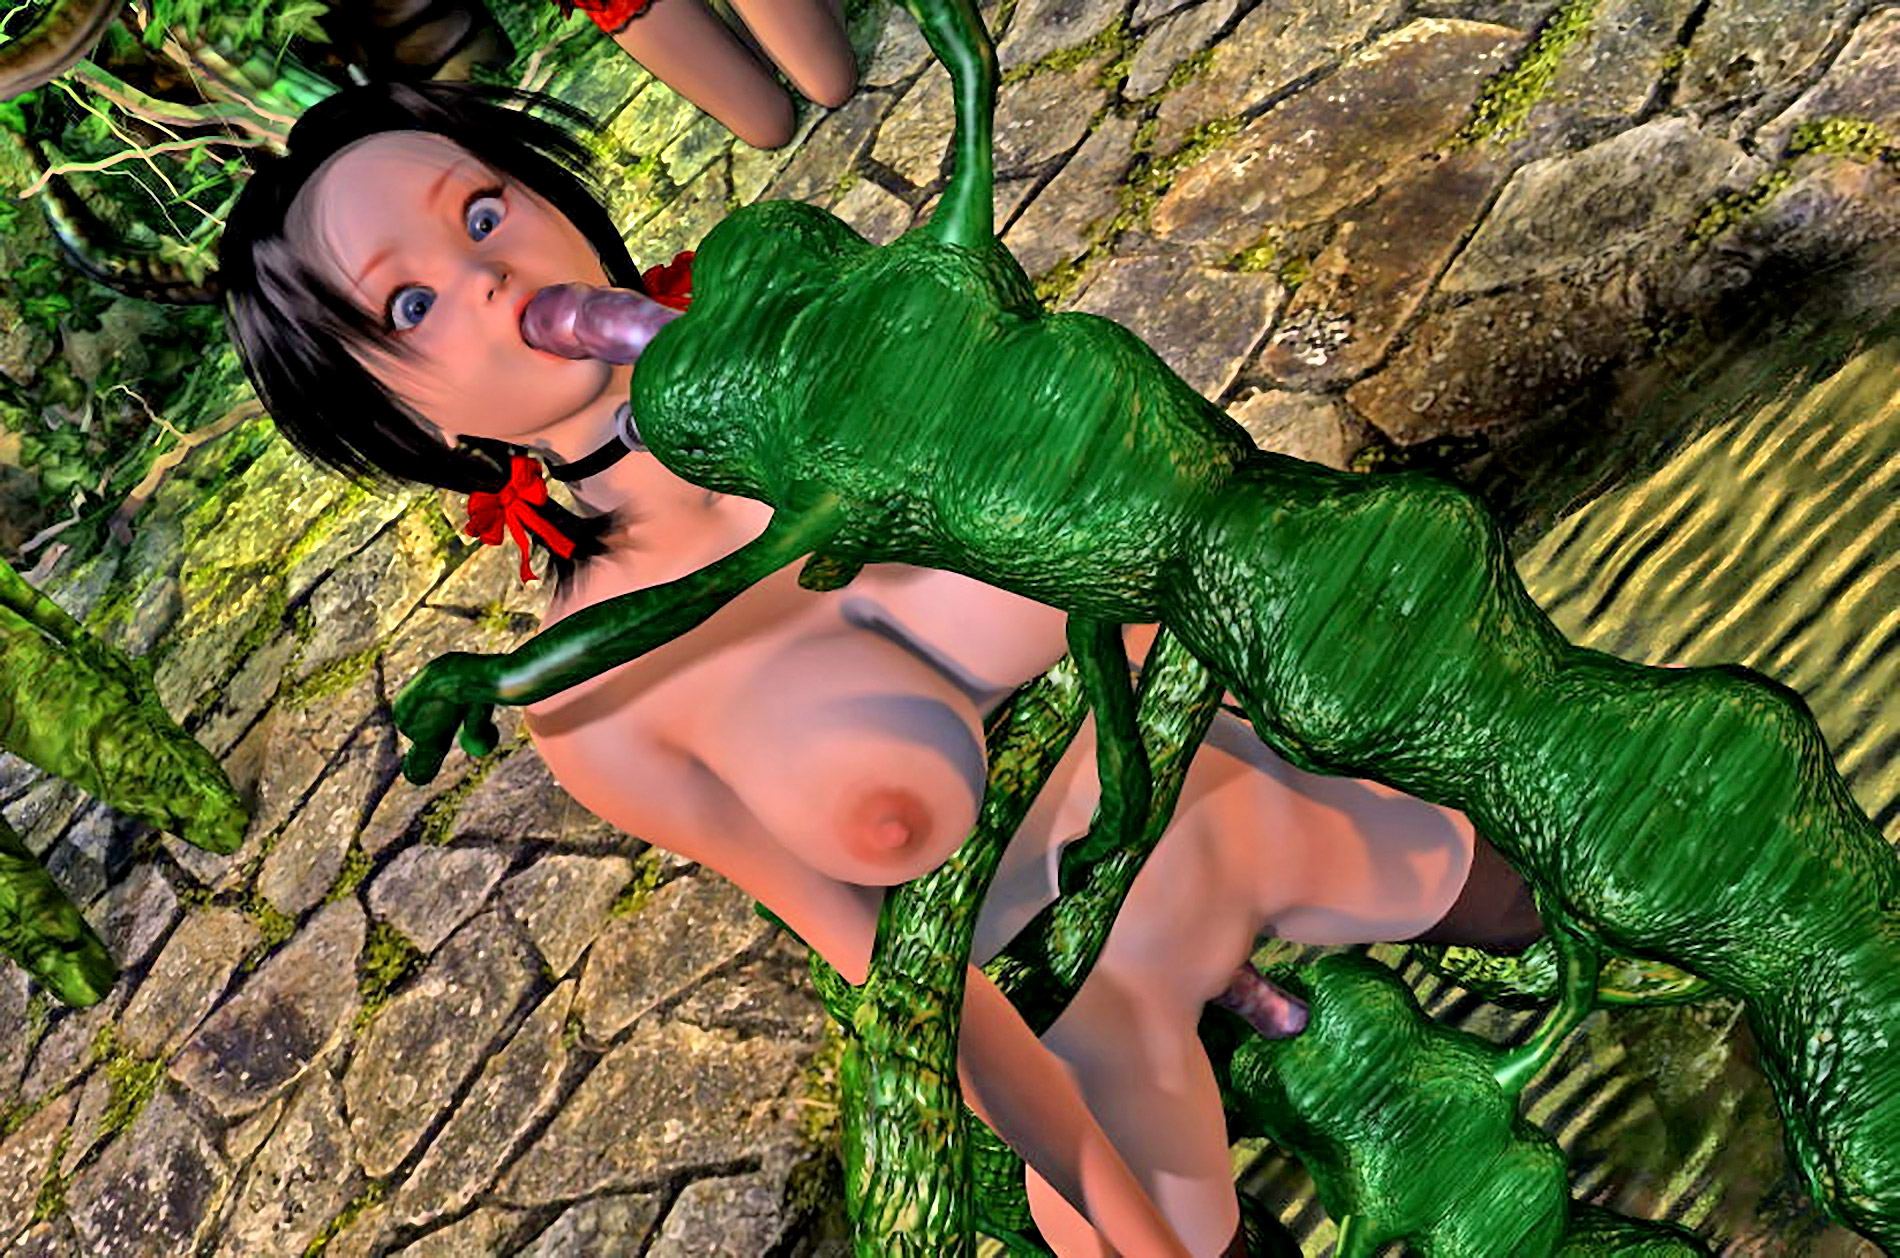 Tomb raider hentai pic tentacle exposed photo